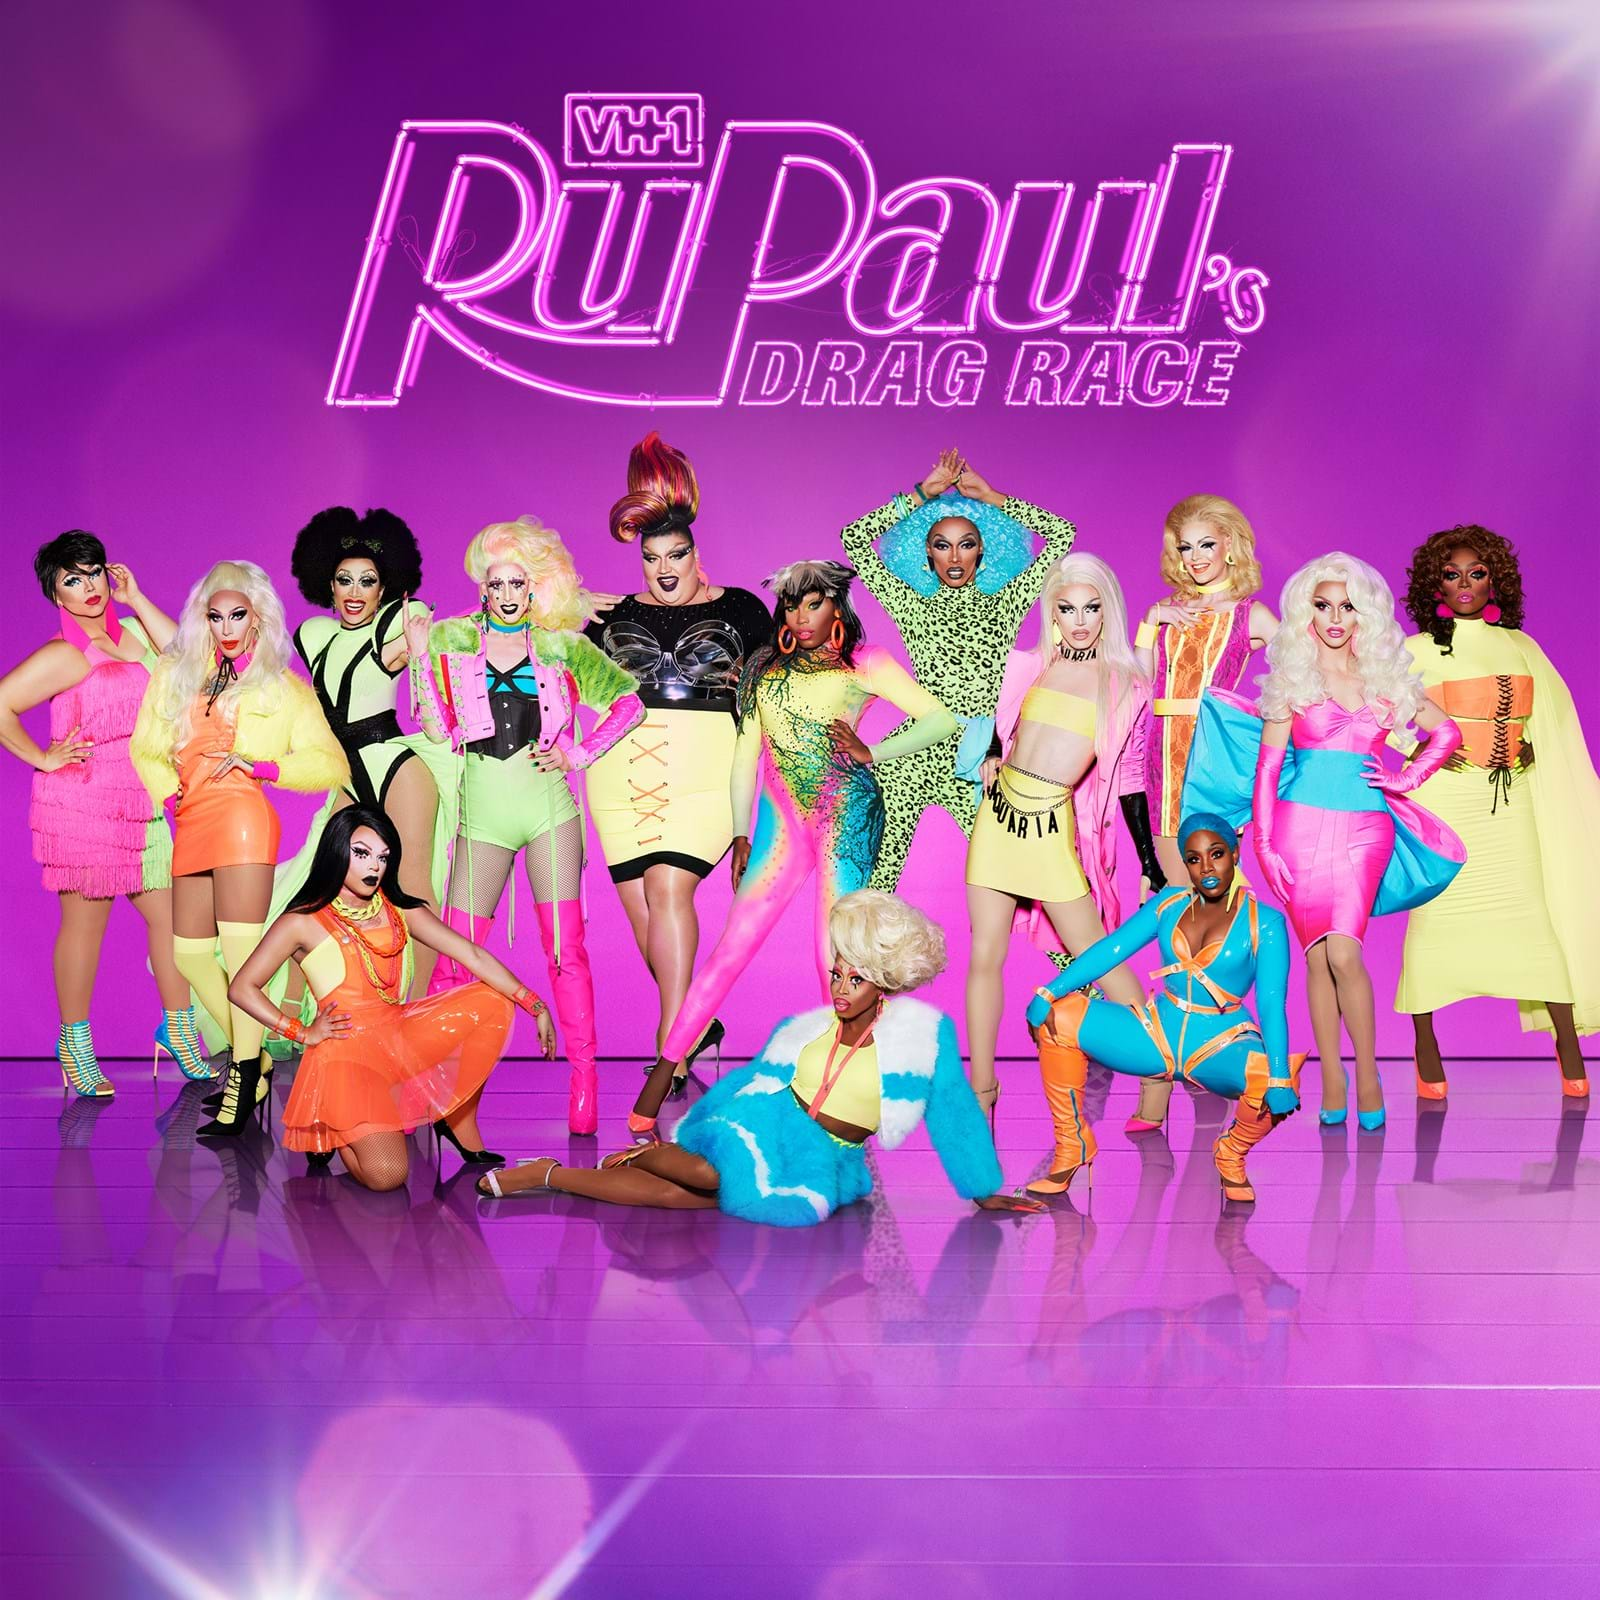 RUPAUL'S DRAG RACE SASHAYS ACROSS LATIN AMERICA